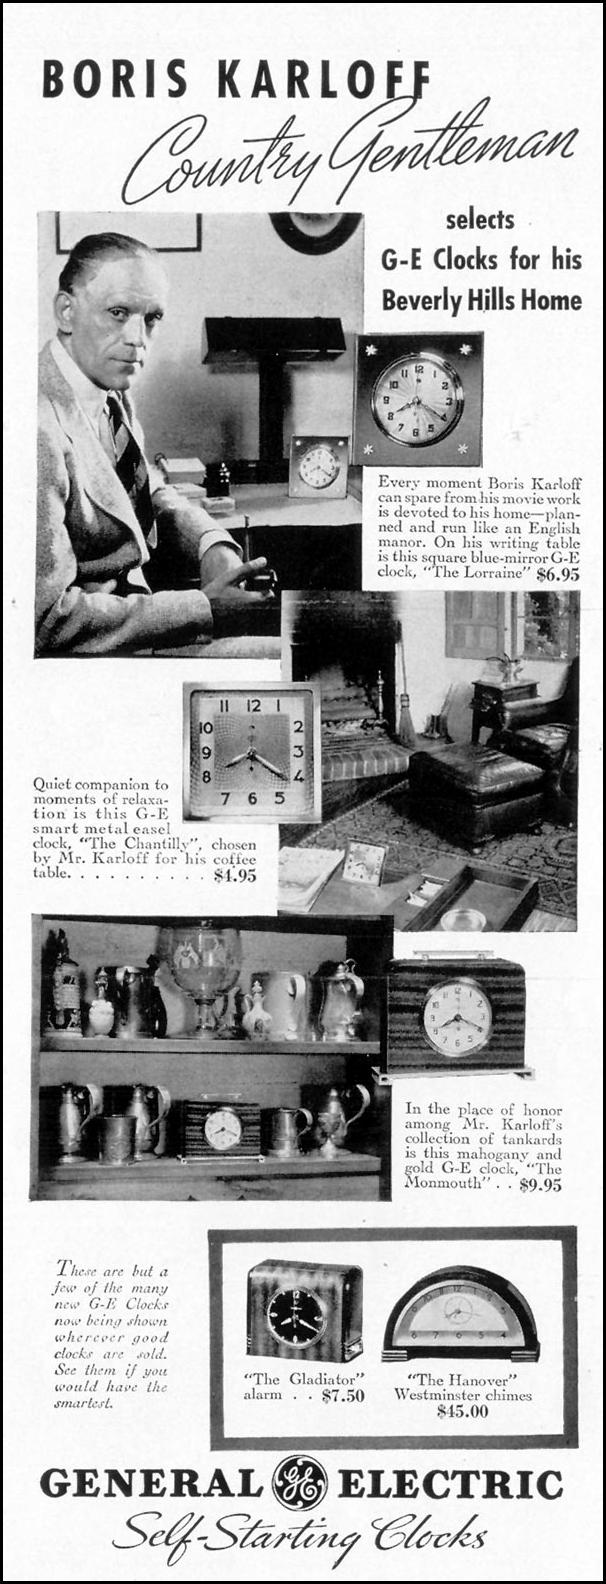 G. E. ELECTRIC CLOCKS LIFE 08/02/1937 p. 5